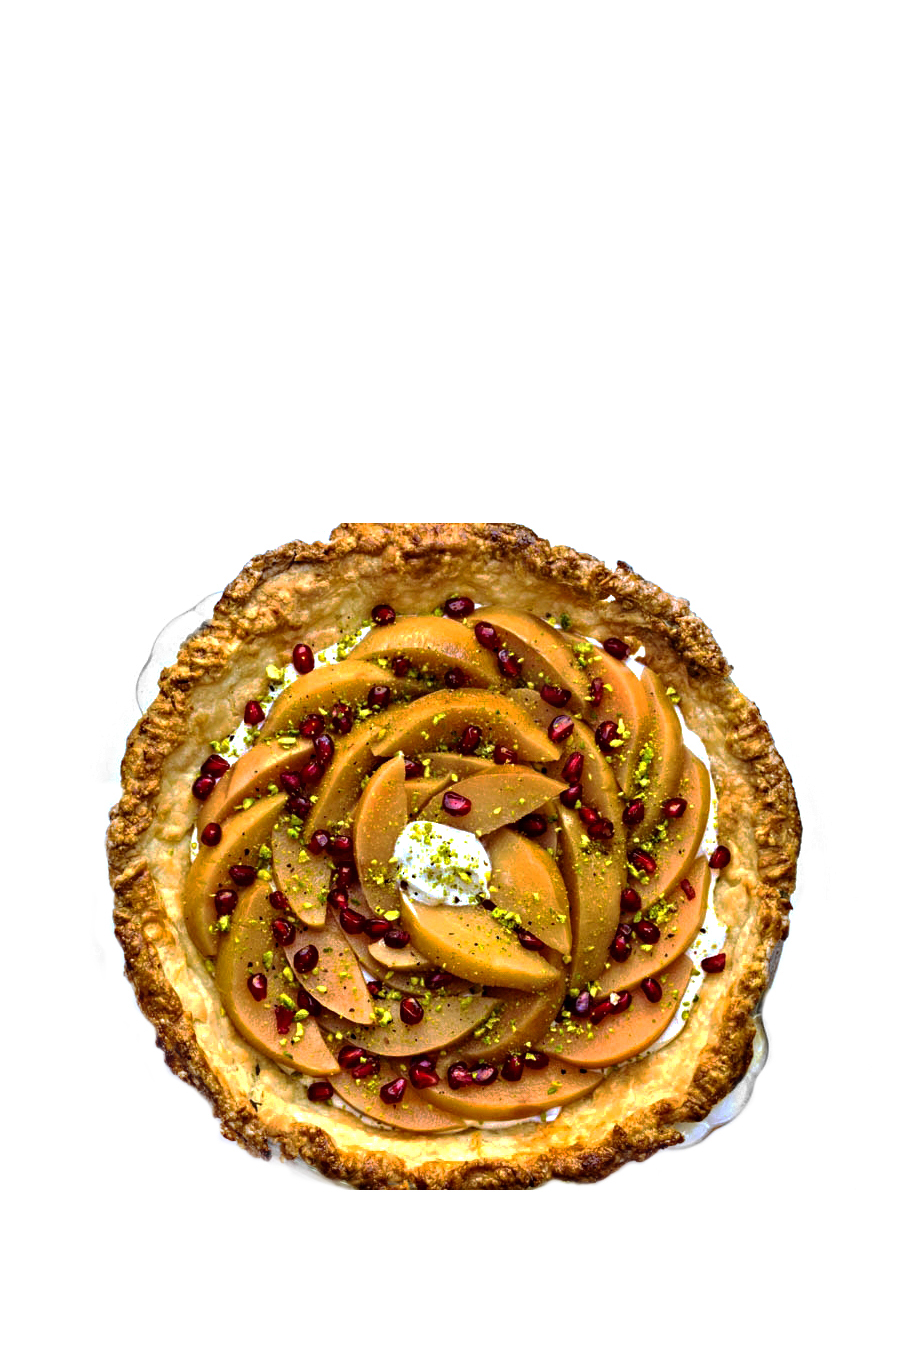 Poached rosewater-scented quince and creamy labneh pair up in Naz Deravian's elegant fall pie.